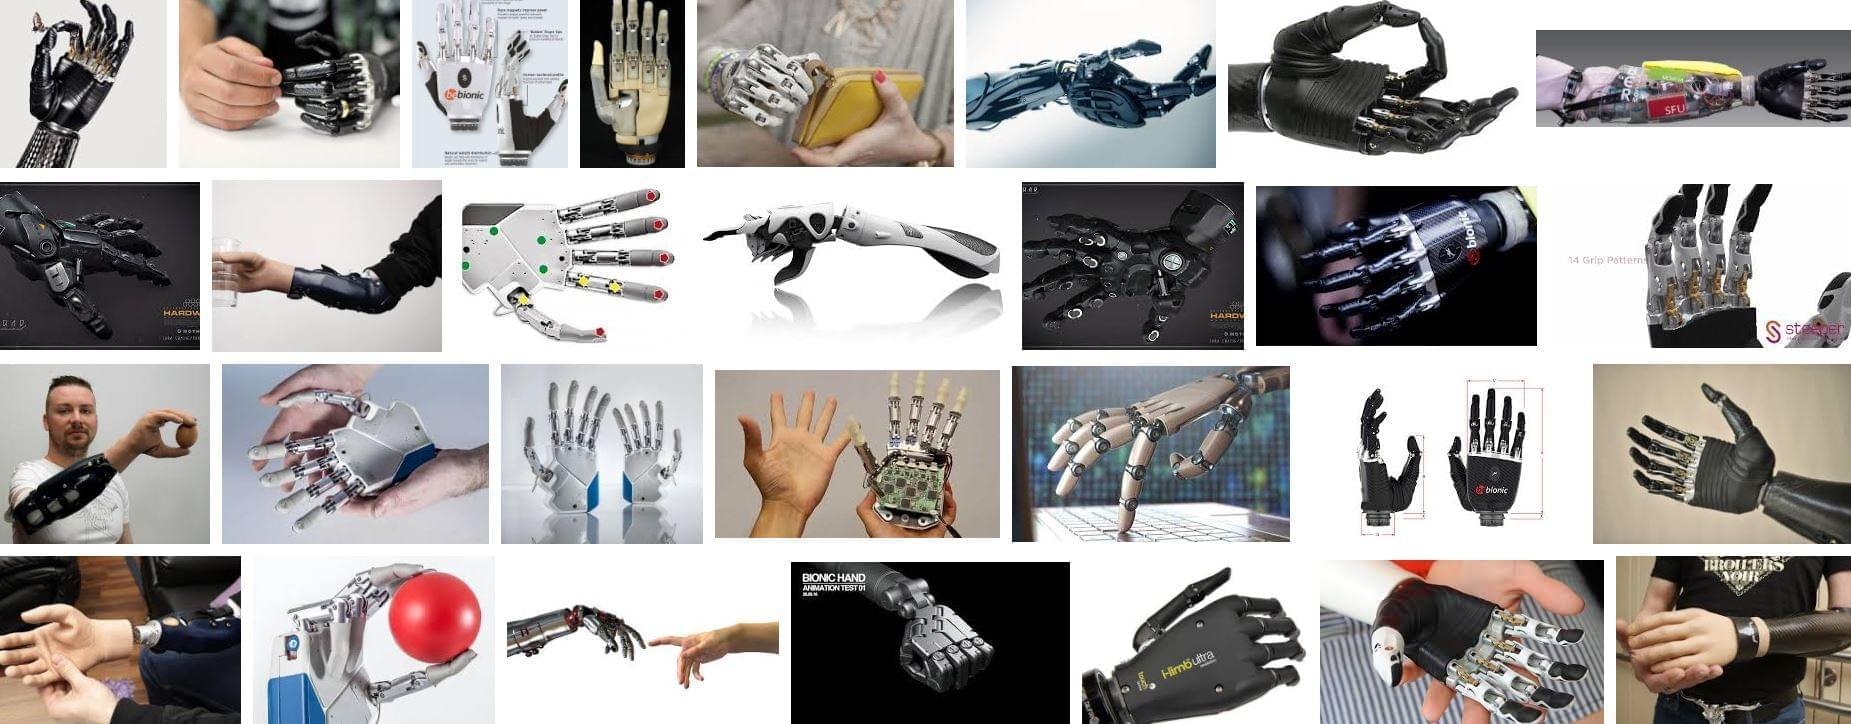 The prosthesis is controlled by the nerve